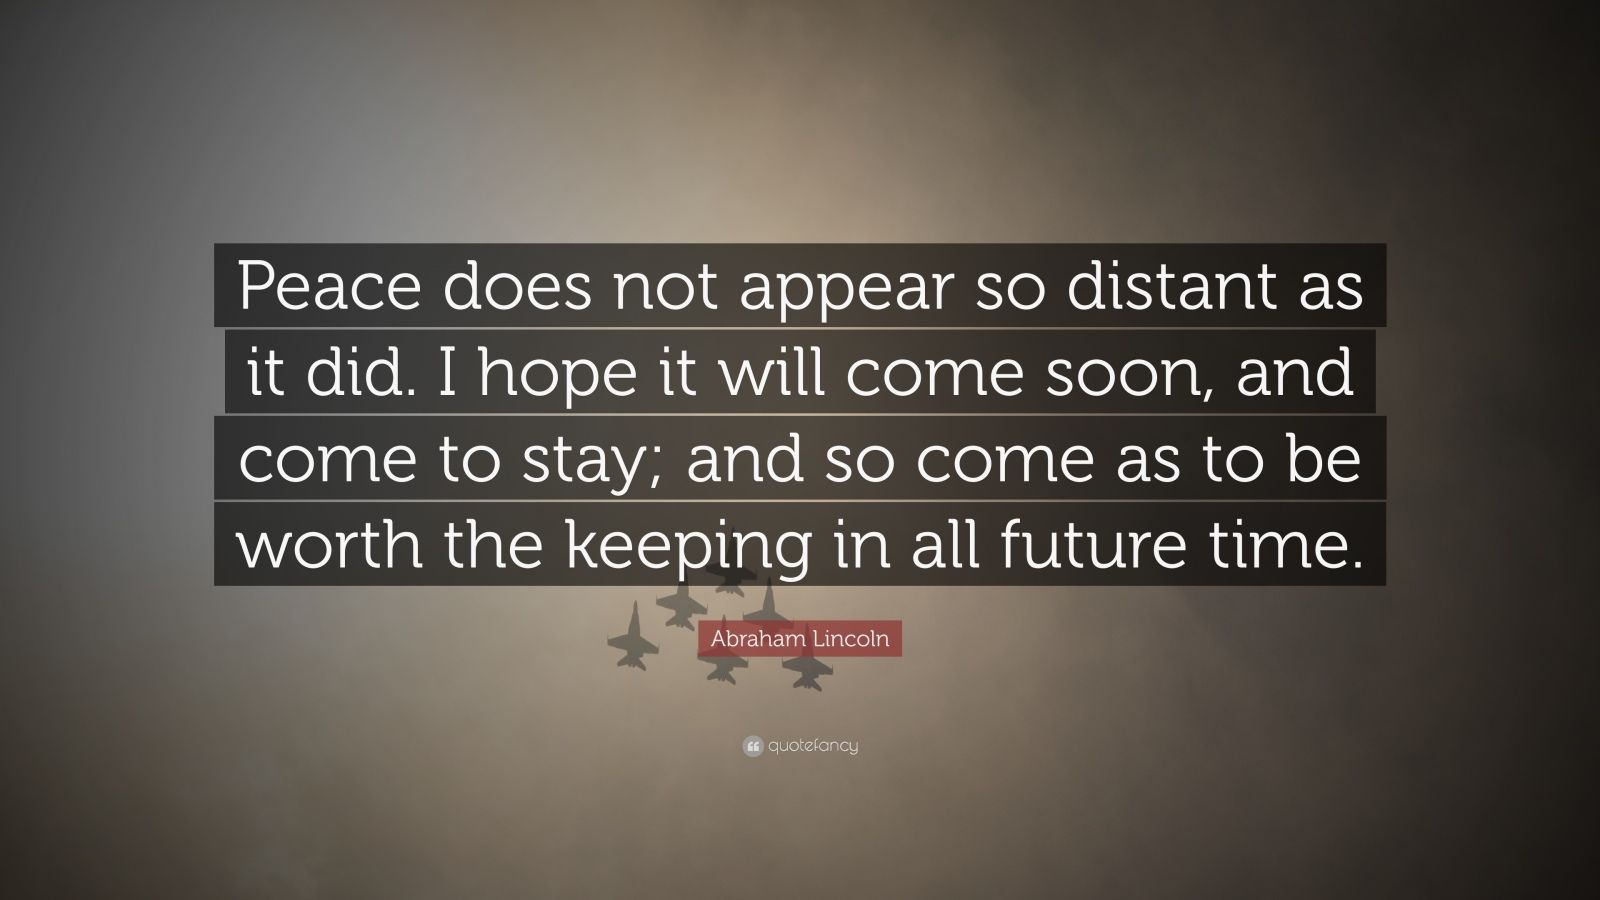 """Abraham Lincoln Quote: """"Peace does not appear so distant as it did. I hope it will come soon, and come to stay; and so come as to be worth the keeping in all future time."""""""